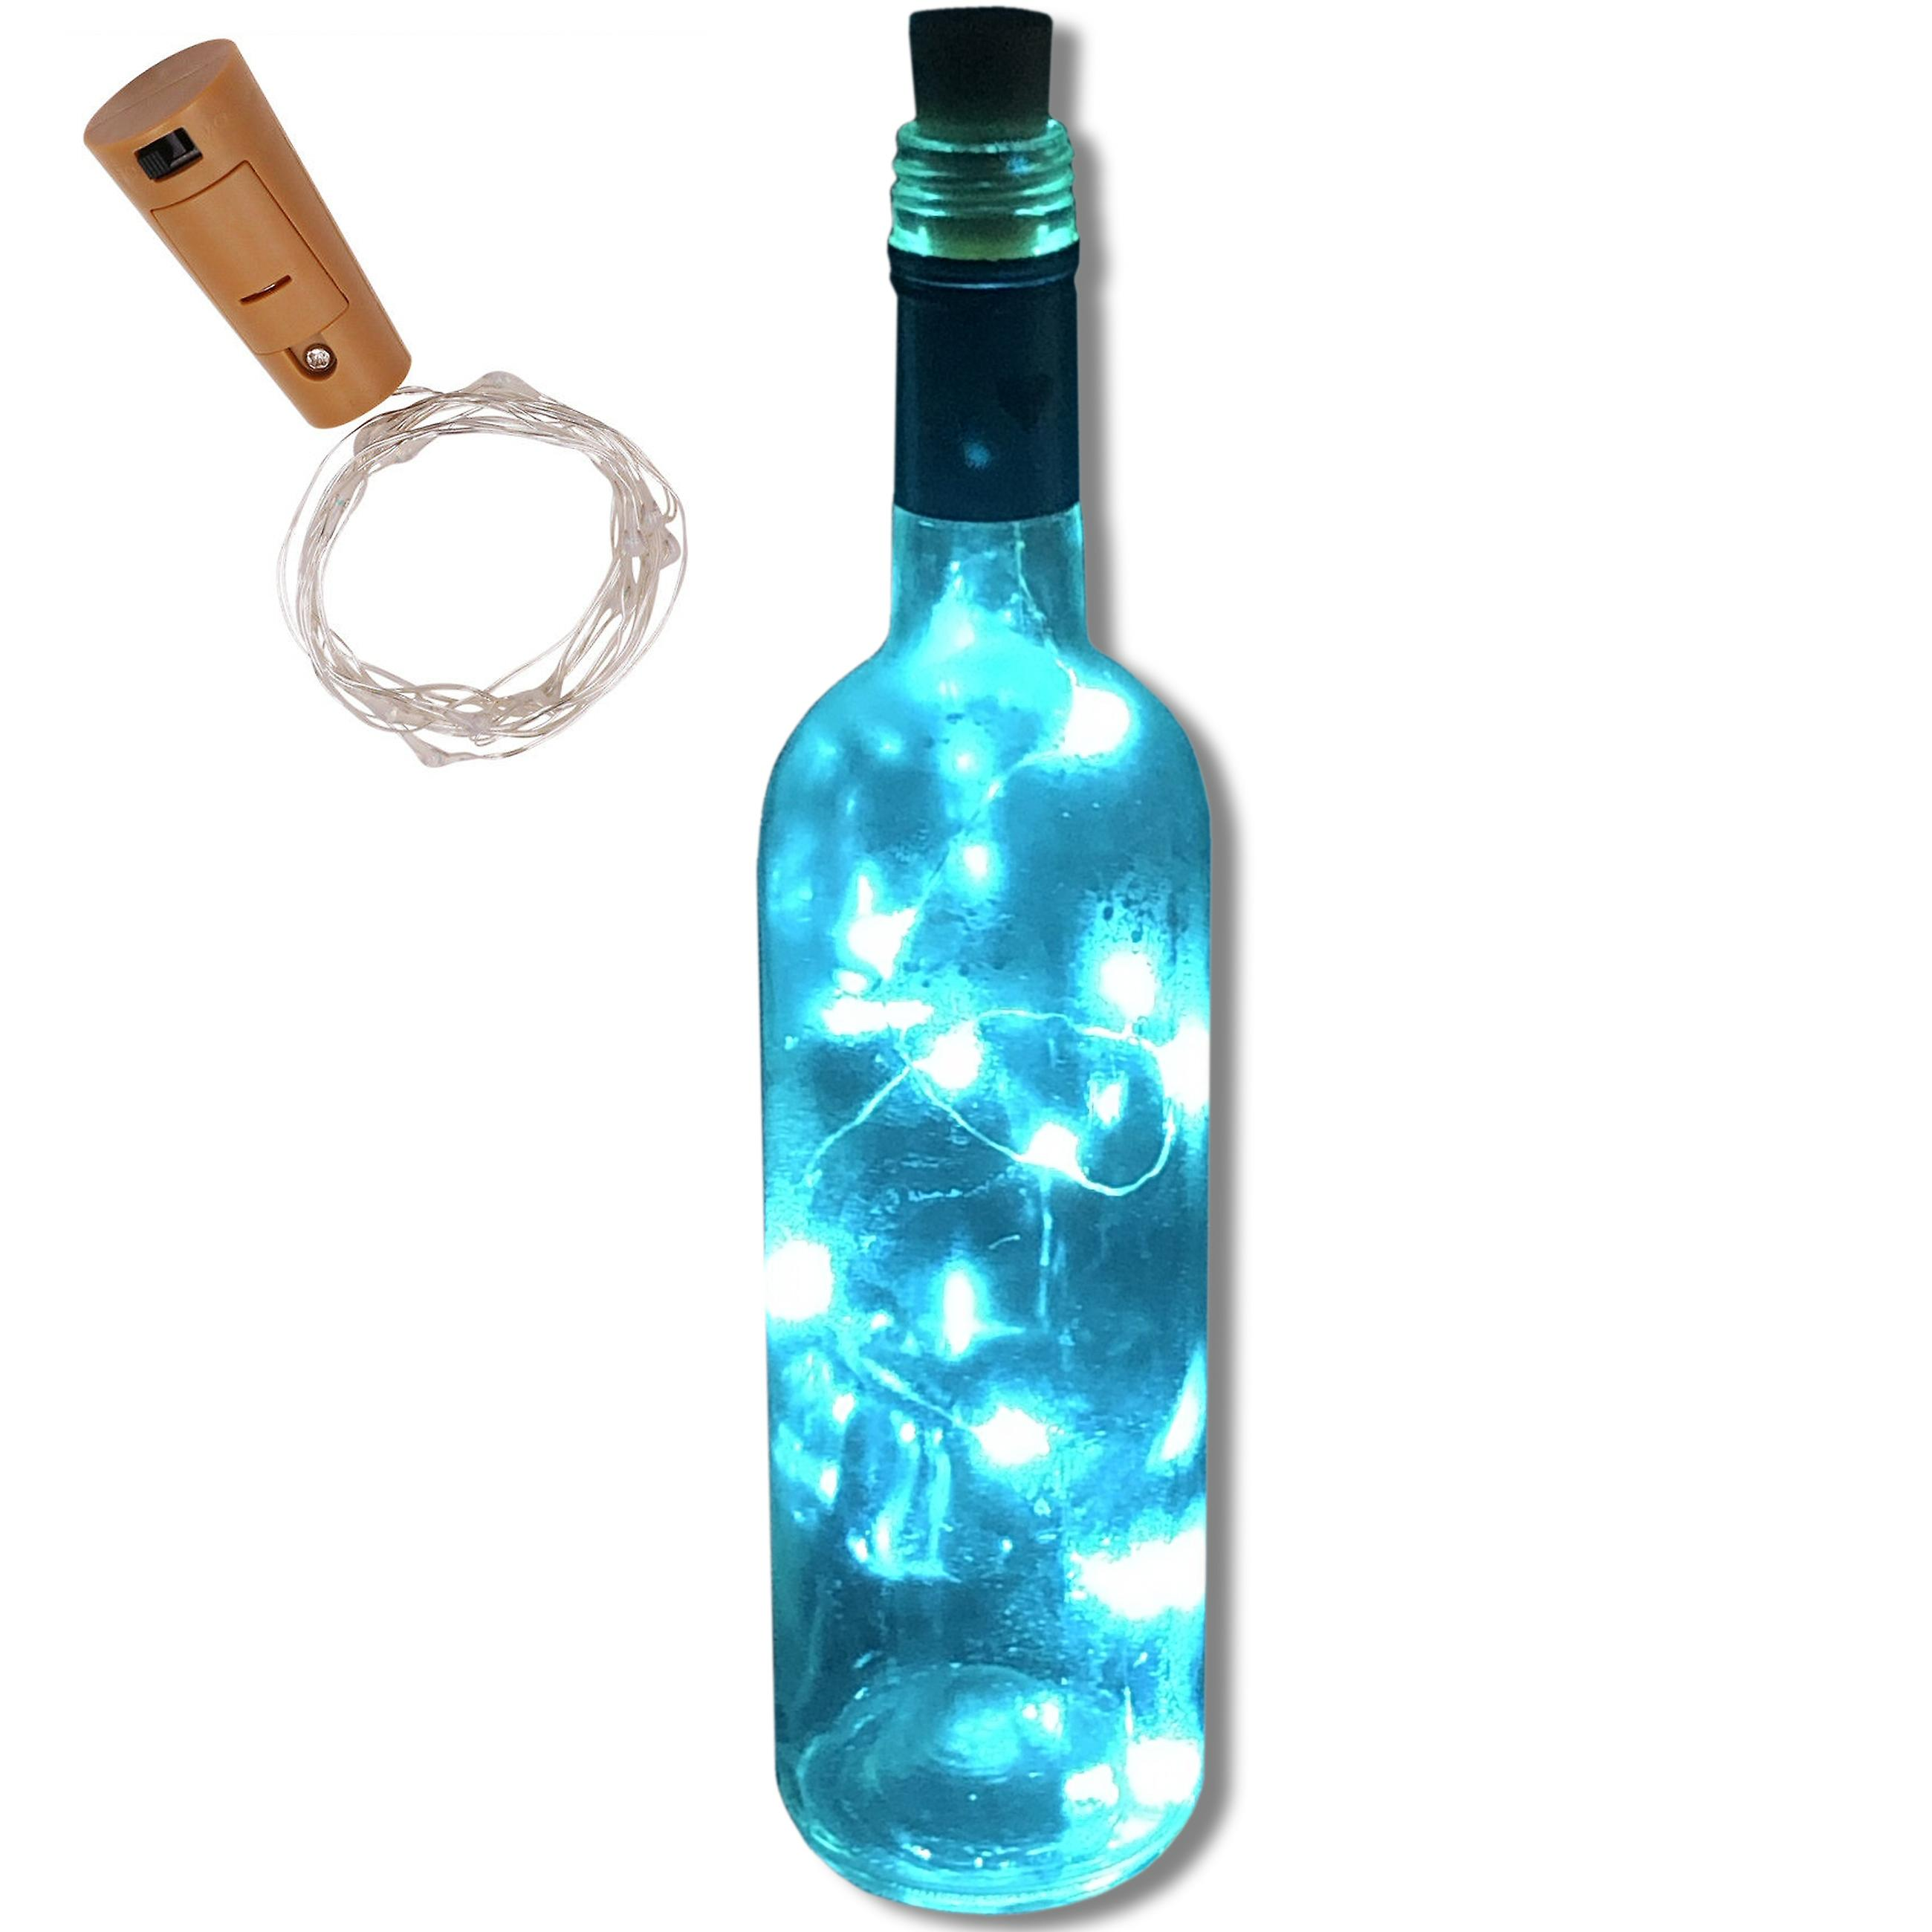 LED Cork with 10 LED Lights on a String, Bottle Stopper, Lamp, Party, Wedding, Event (Bottle NOT included)